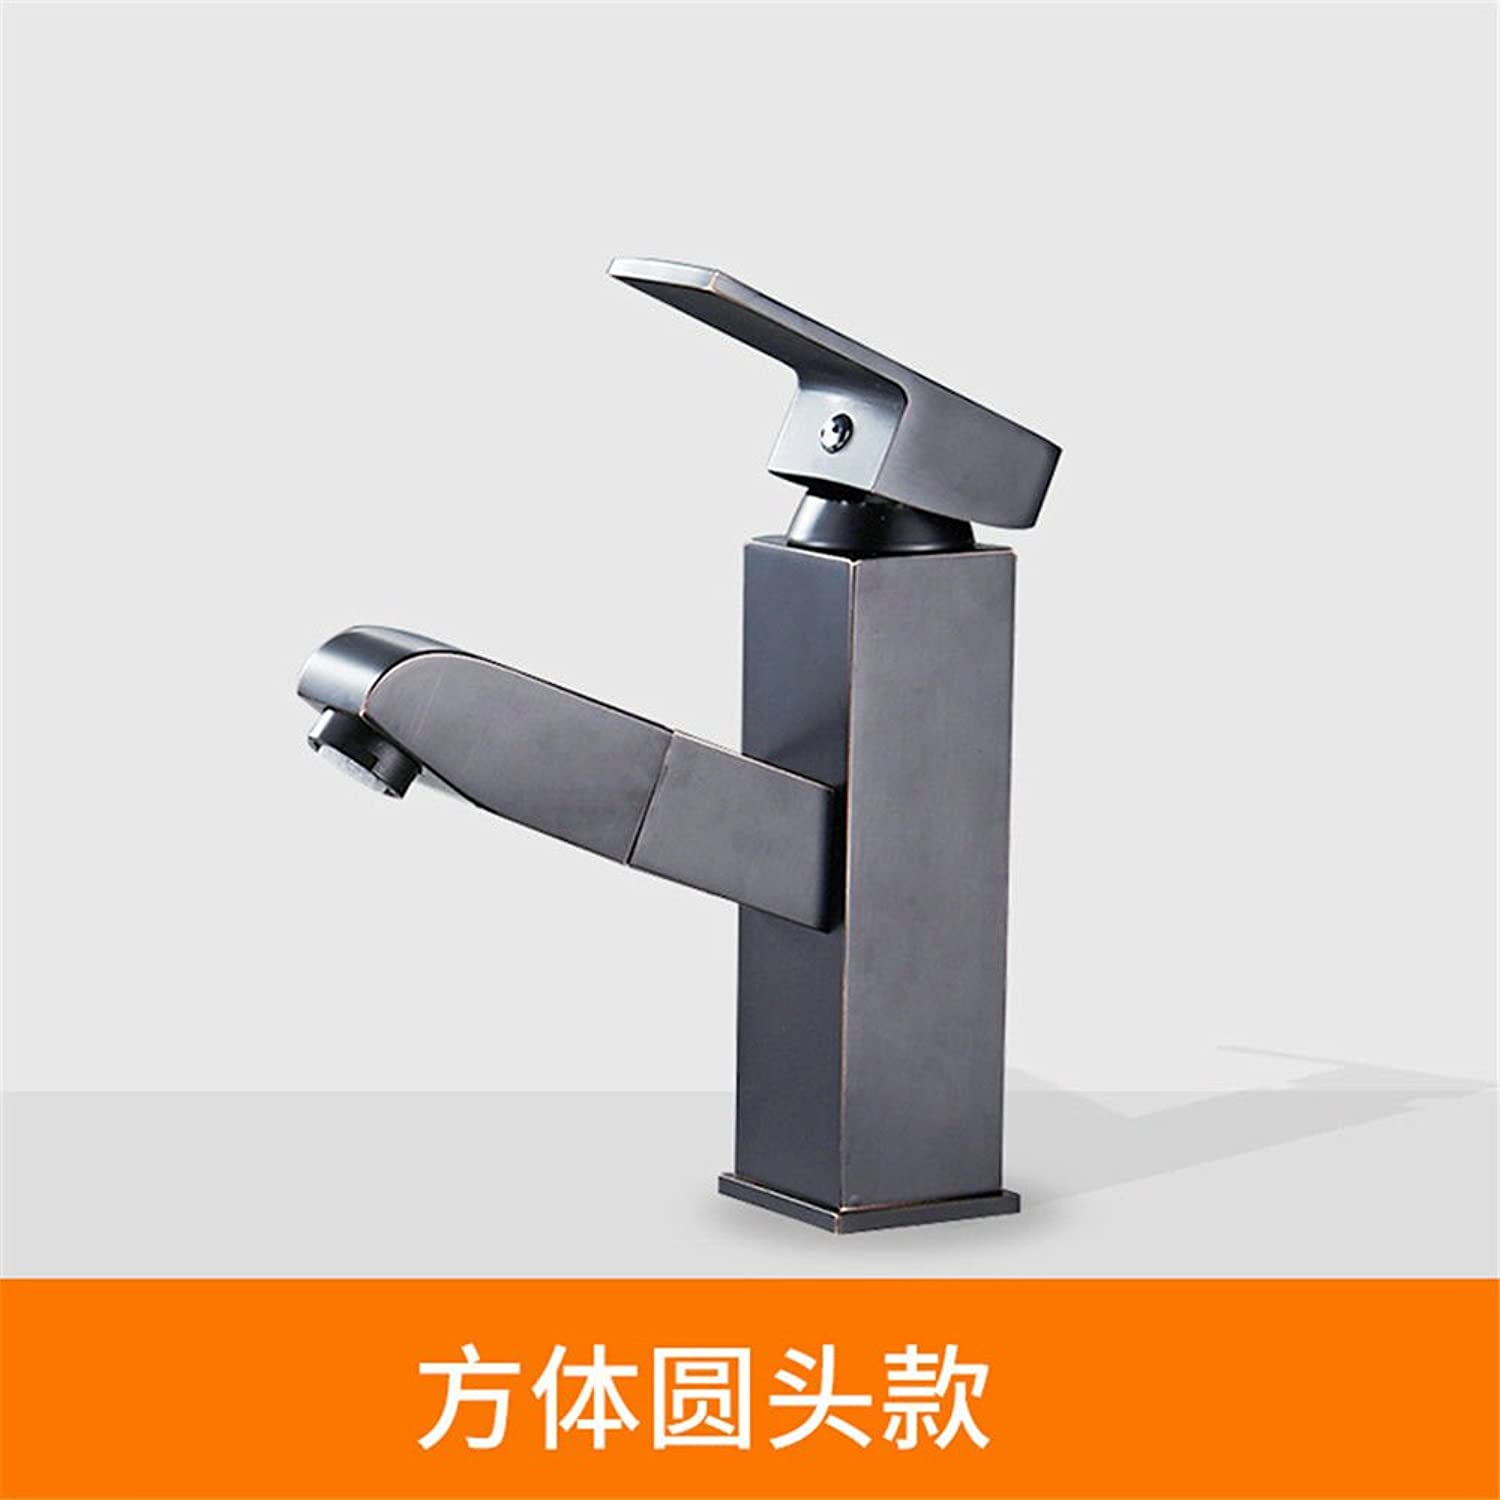 Hlluya Professional Sink Mixer Tap Kitchen Faucet Black pull-down of all copper basin faucet antique table basin of hot and cold tap the C